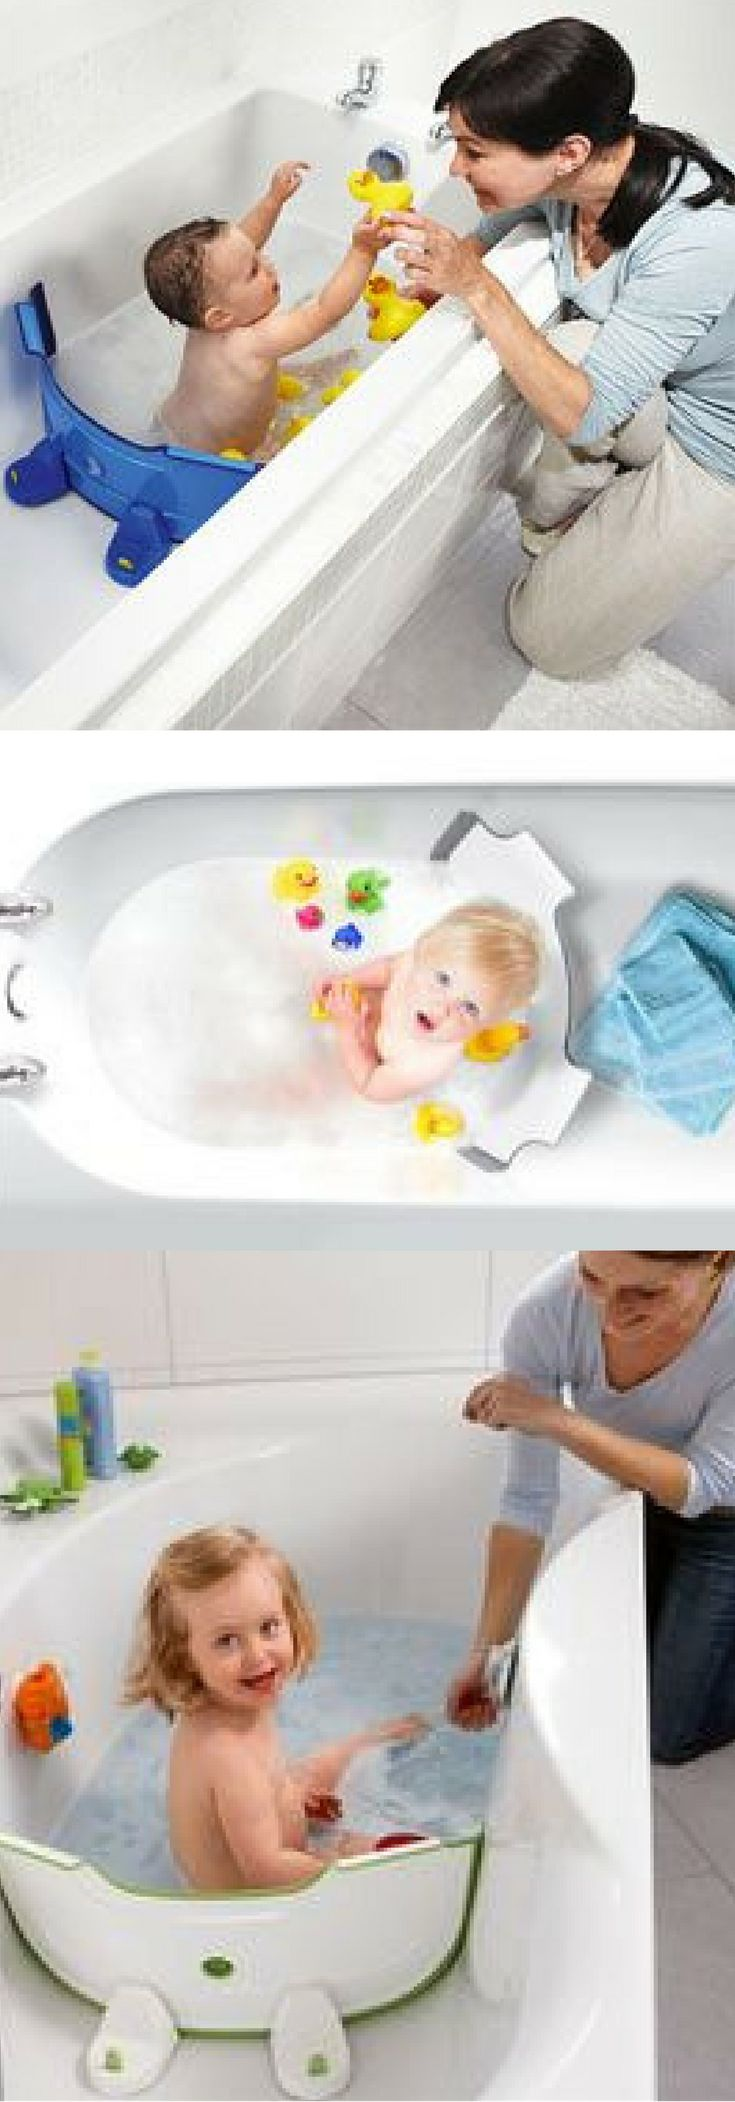 25+ Best Ideas about Bath Toys on Pinterest | Baby bath ...